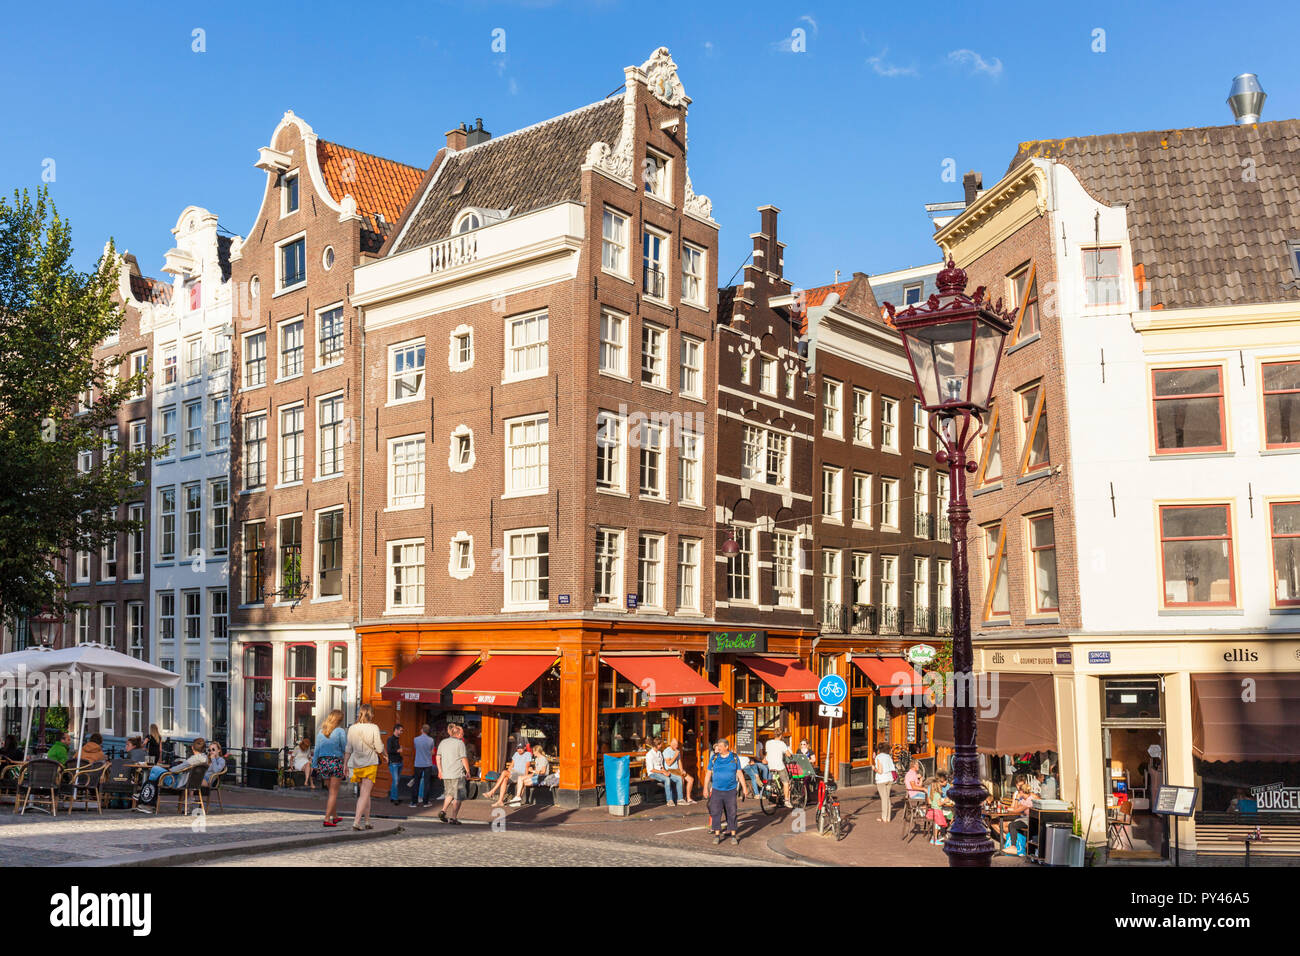 Amsterdam Café Ellis and Café van Zuylen Torensluis Torensteeg over Singel canal Amsterdam Holland The Netherlands EU Europe - Stock Image